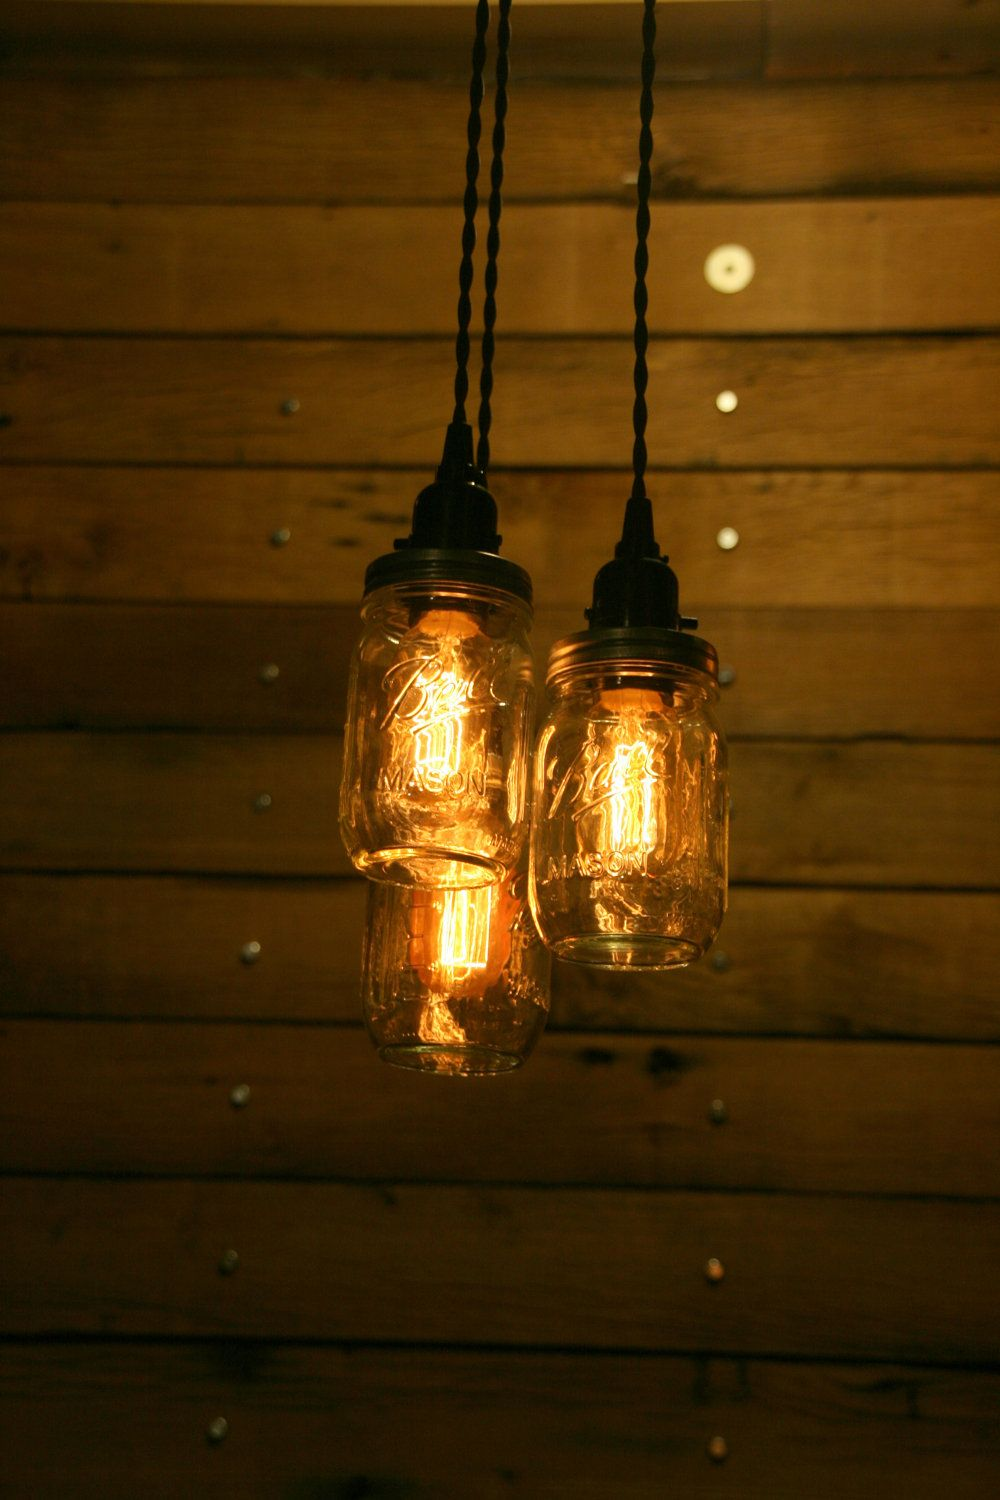 Three Ball Jar Chandelier Light - Jar Pendant Cluster - 3 Ball Jar Cluster by Industrial Rewind & 3 Jar Pendant Light Mason Jar Chandelier by IndustrialRewind ... azcodes.com